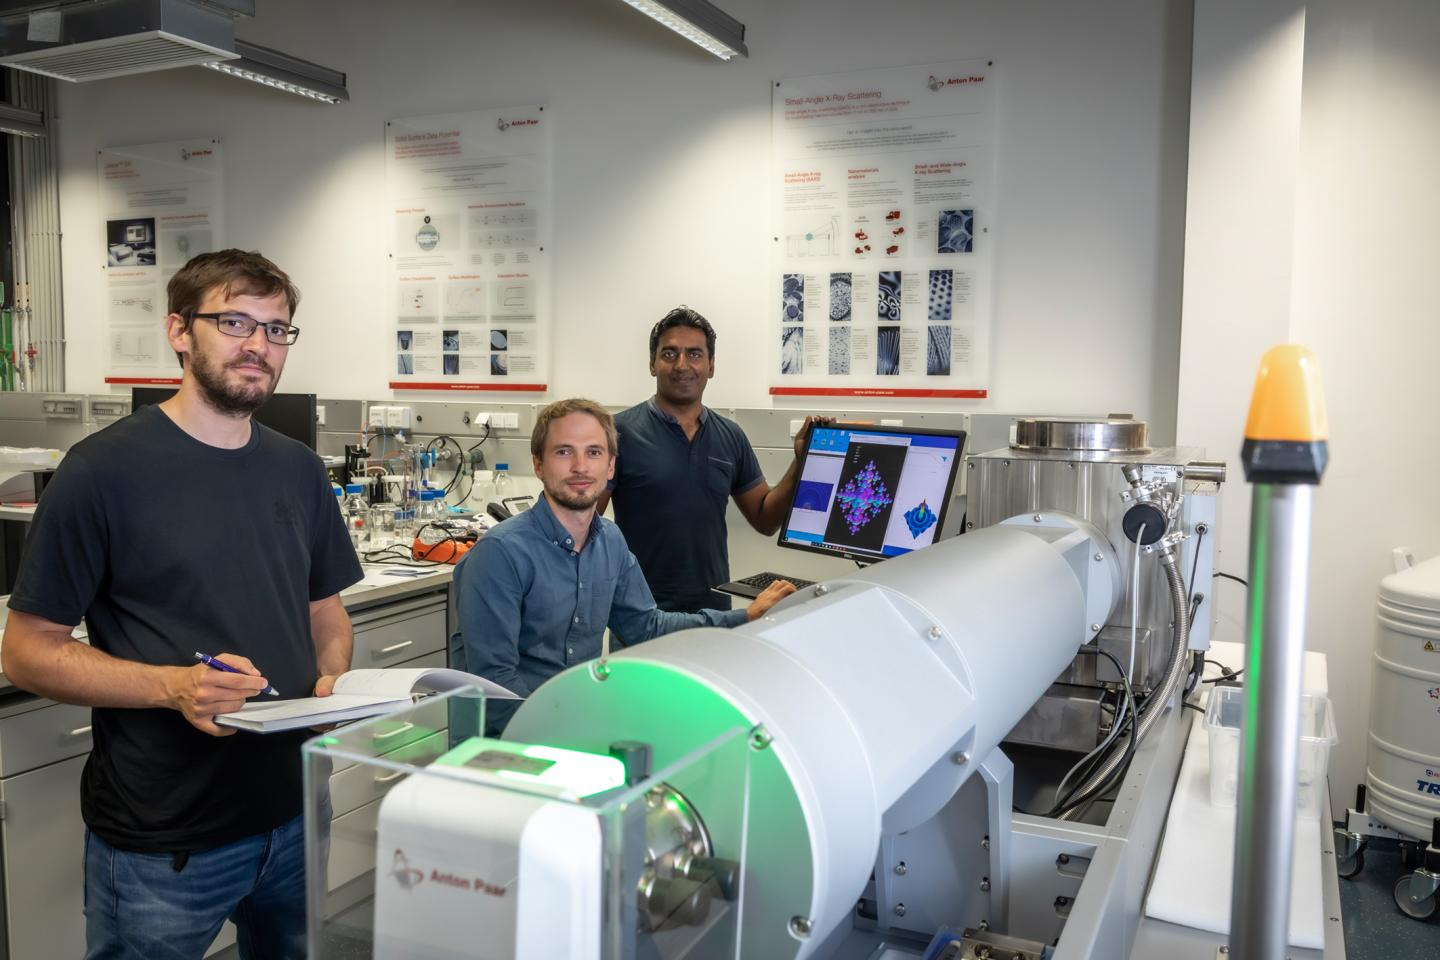 Harald Fitzek, Christian Prehal and Qamar Abbas (from left) at the SAXS facility SAXSpoint 2.0 (Anton Paar GmbH): With their work at Graz University of Technology, the researchers are providing new insights into hybrid supercapacitors.  CREDIT: Lunghammer - TU Graz